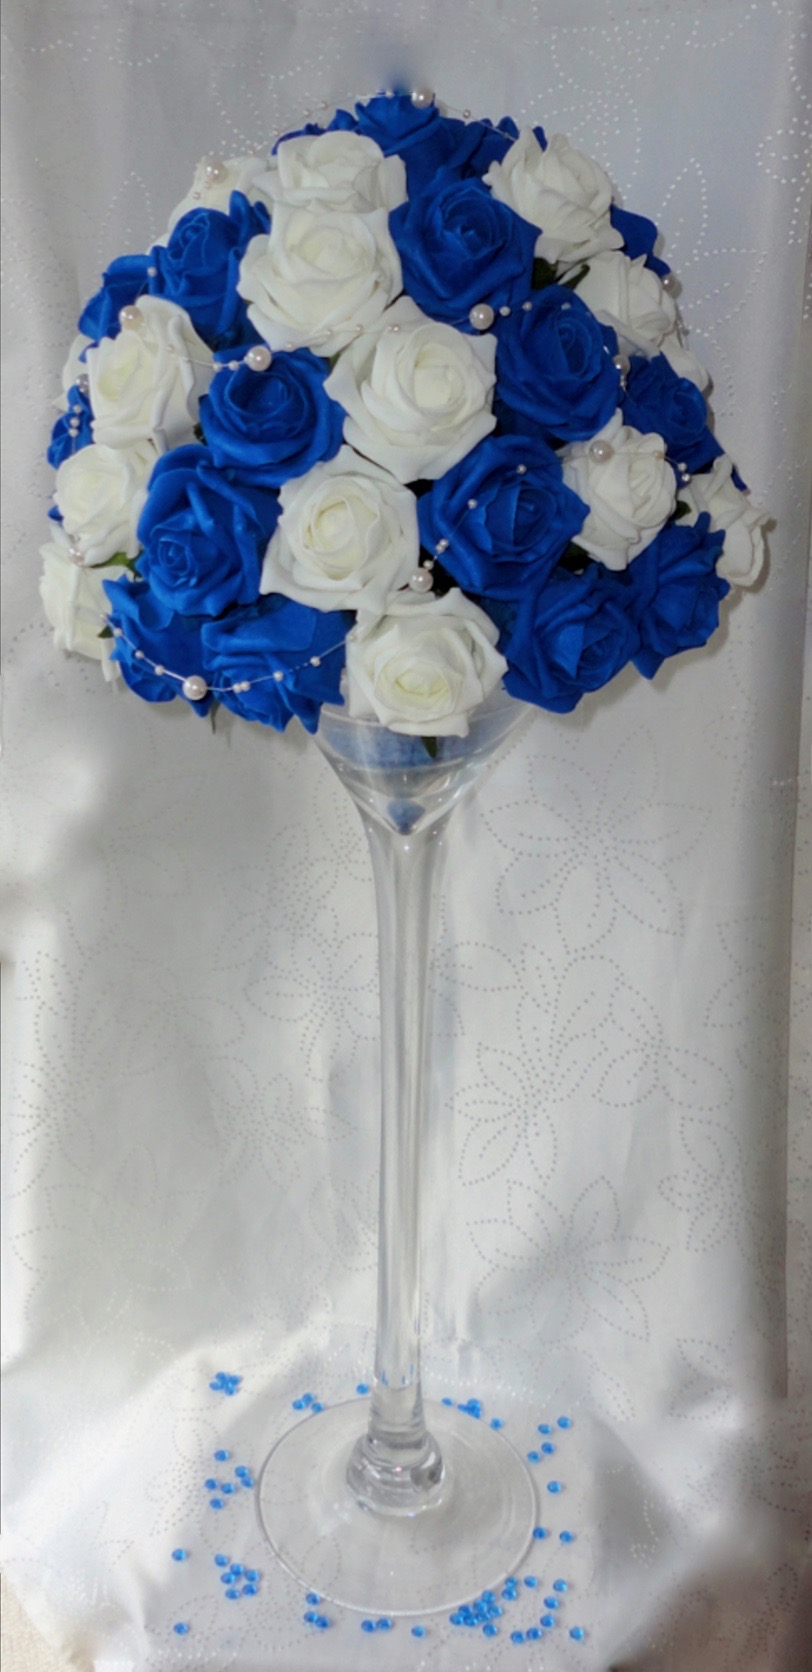 Wedding centrepiece the floral touch uk top table centrepiece martinicocktail glass rose centrepiece reviewsmspy